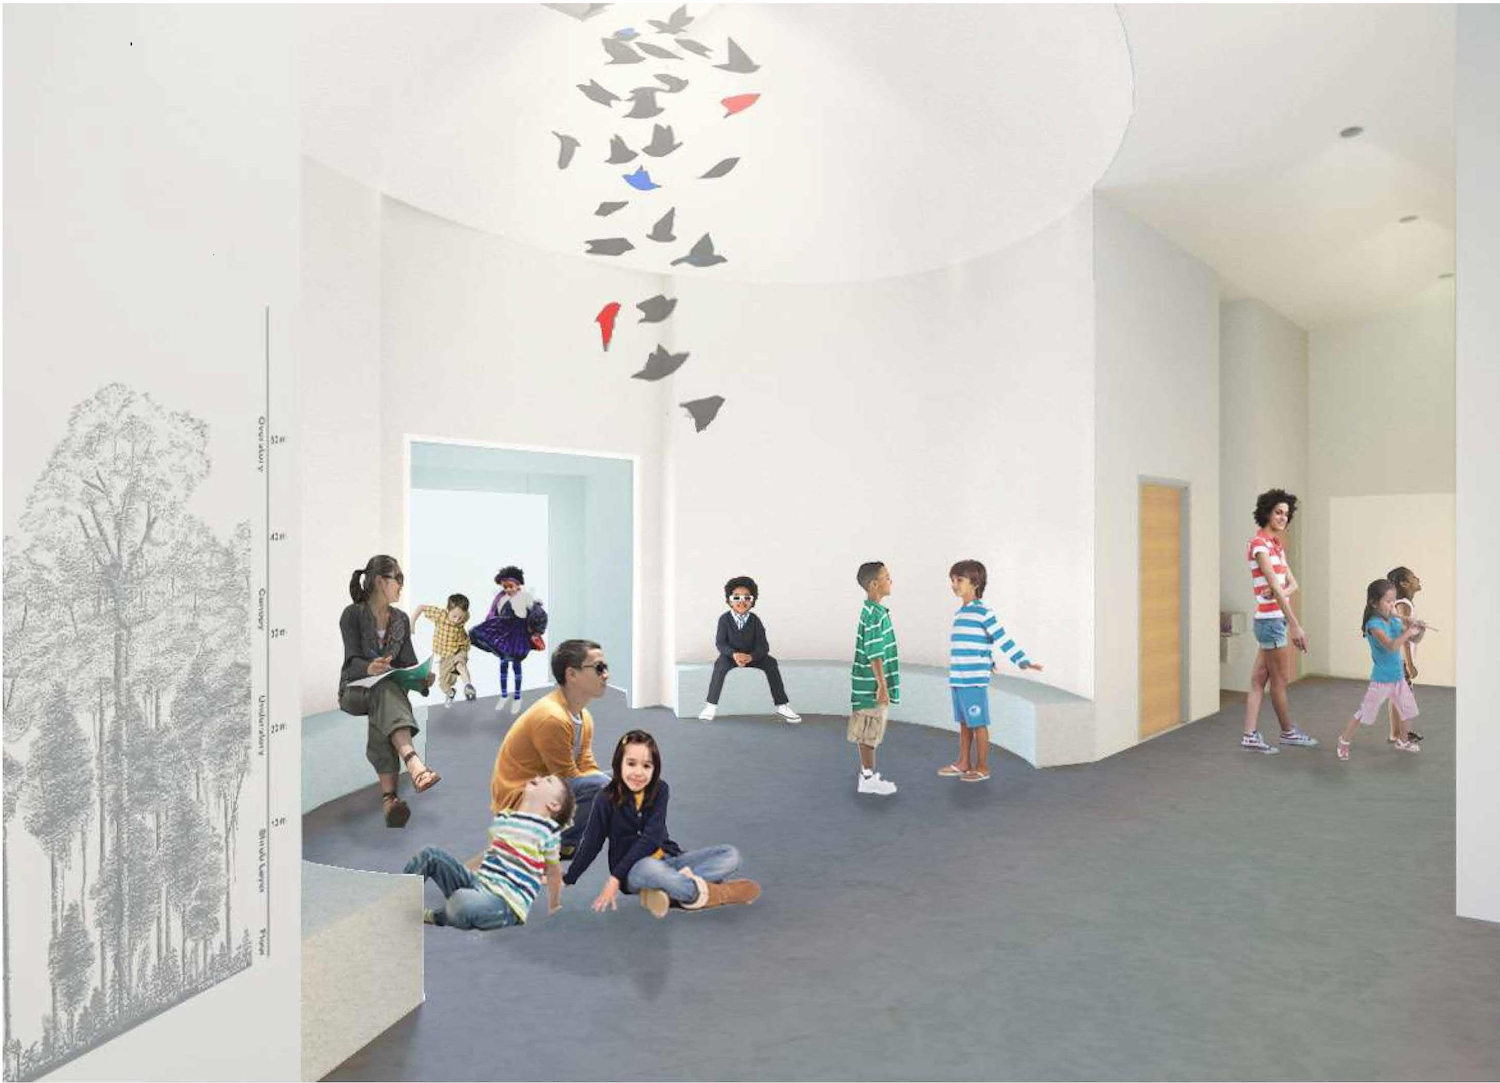 A view of the school-group orientation space in the New Bruce. Currently the Museum's main entrance  and lobby, this area will serve as the entry to the greatly expanded Education Wing.